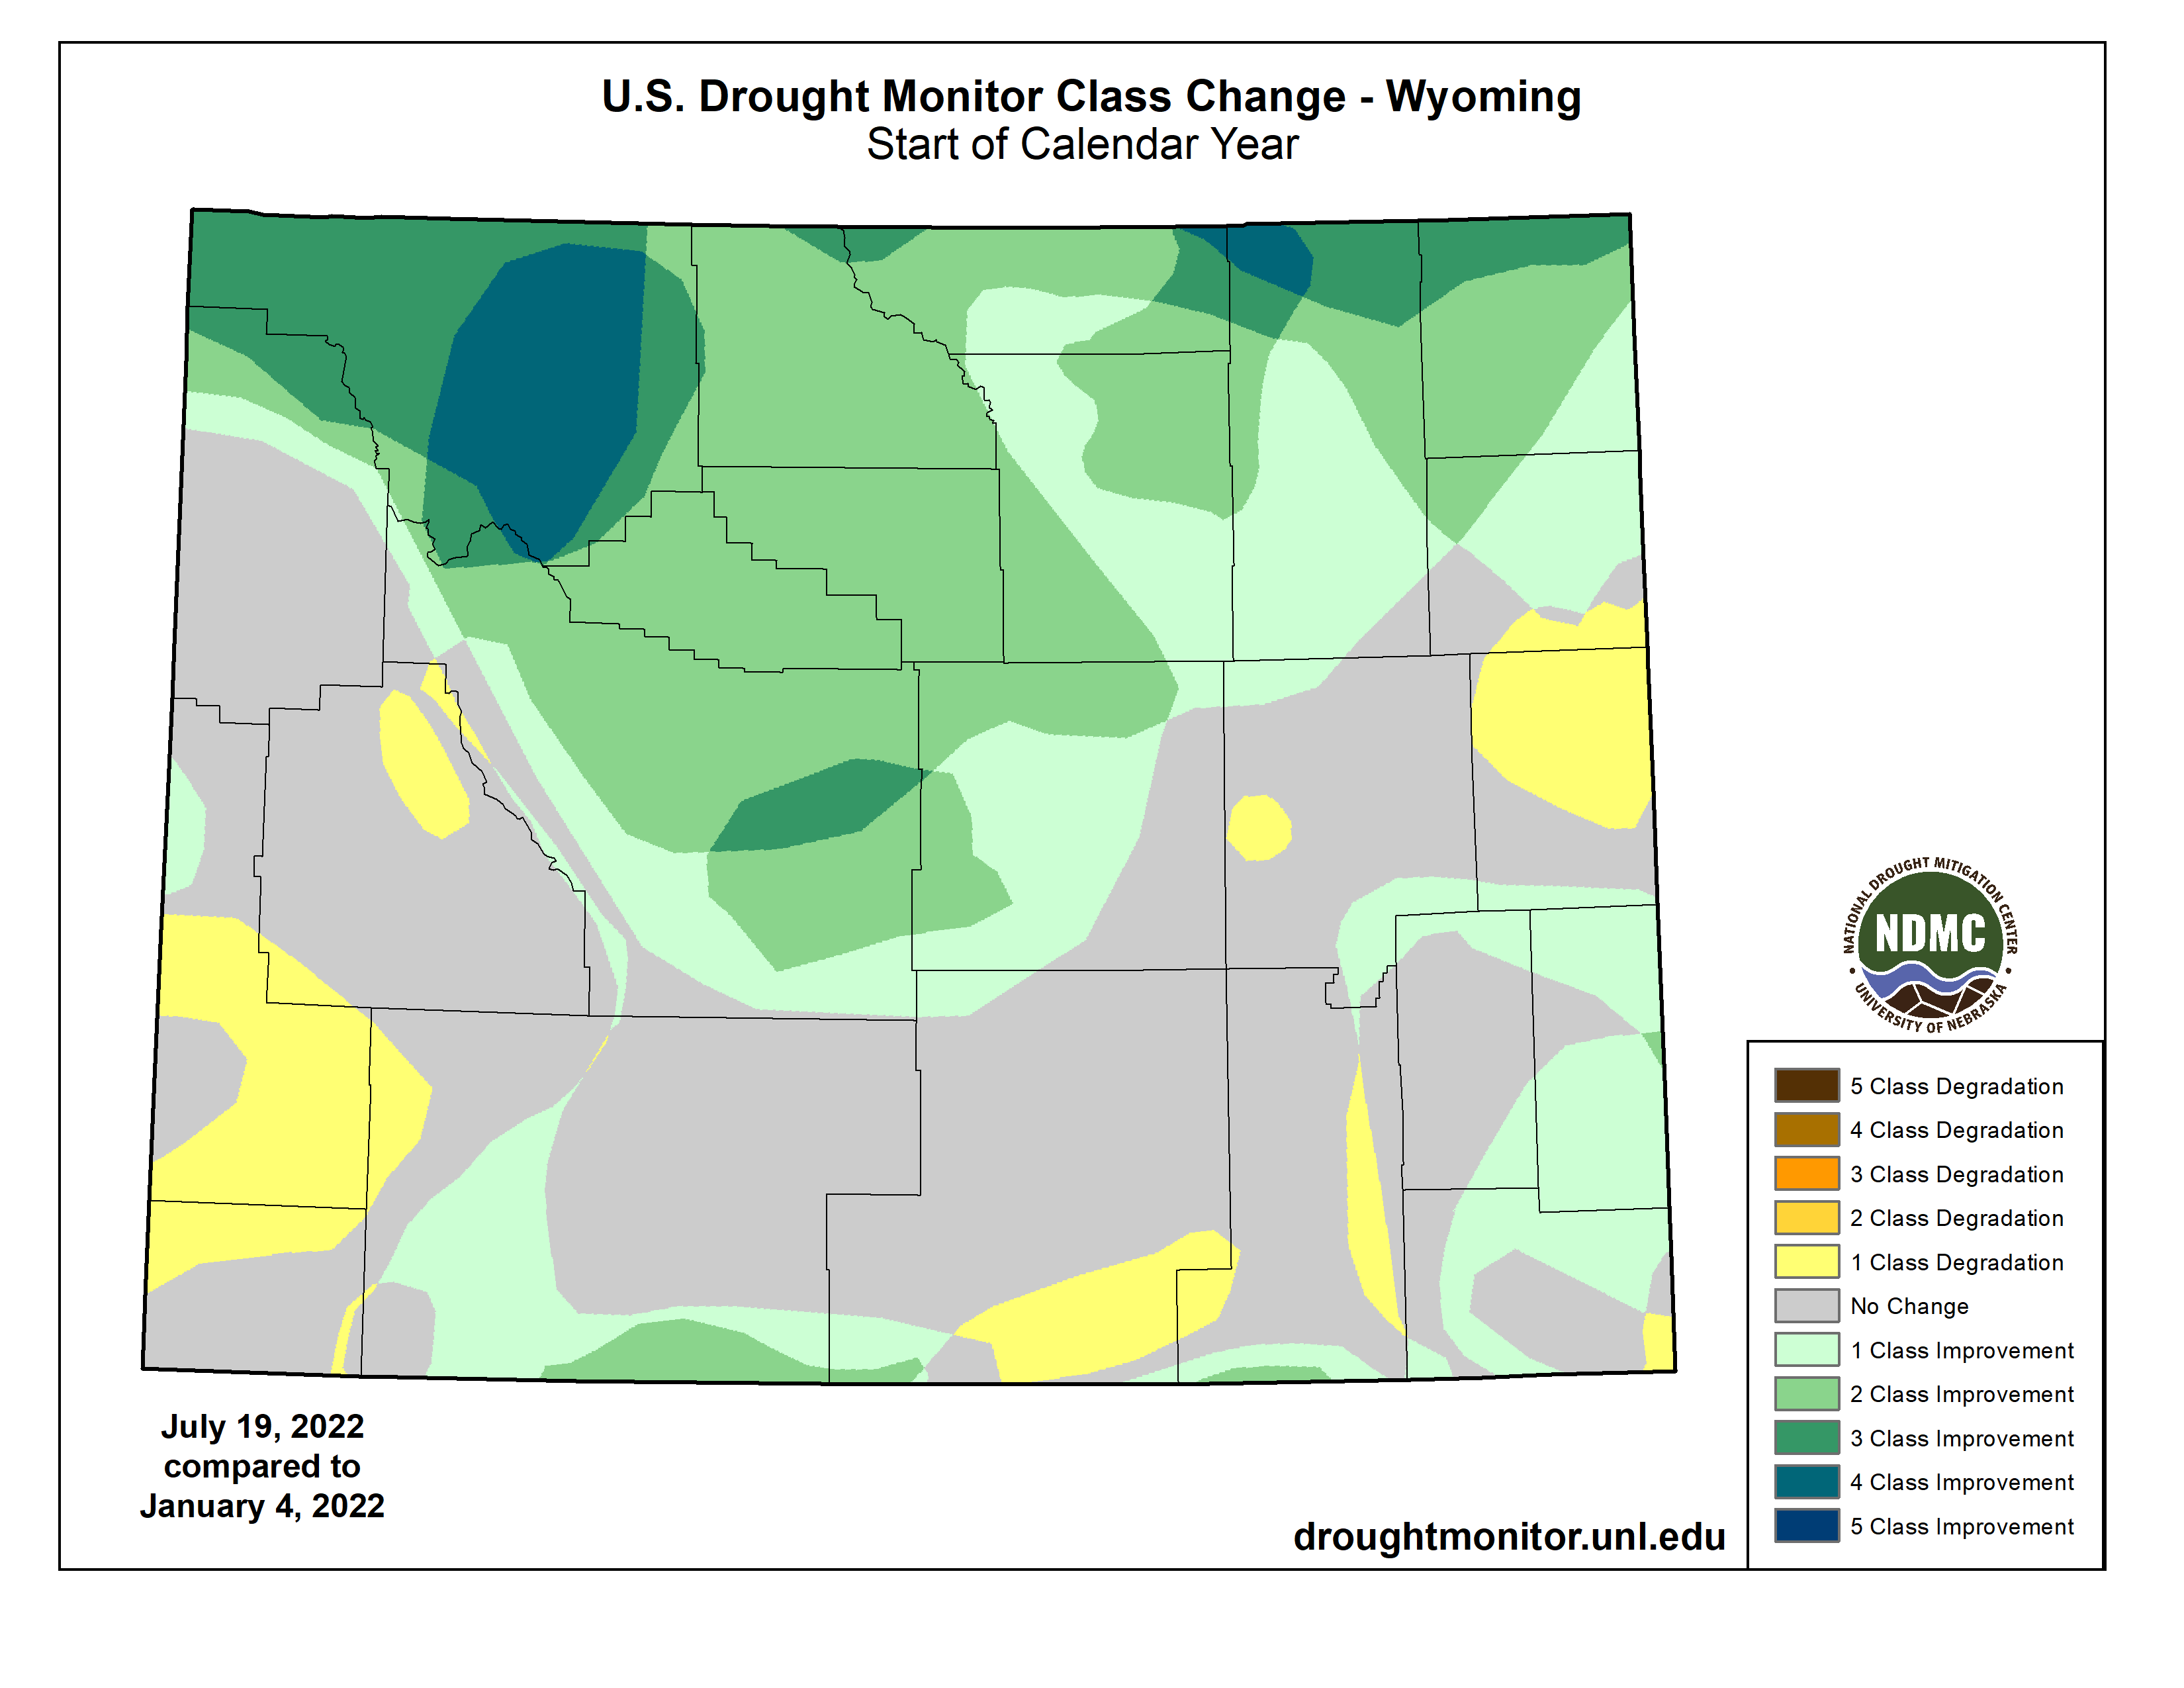 Drought Classification Change - 2017